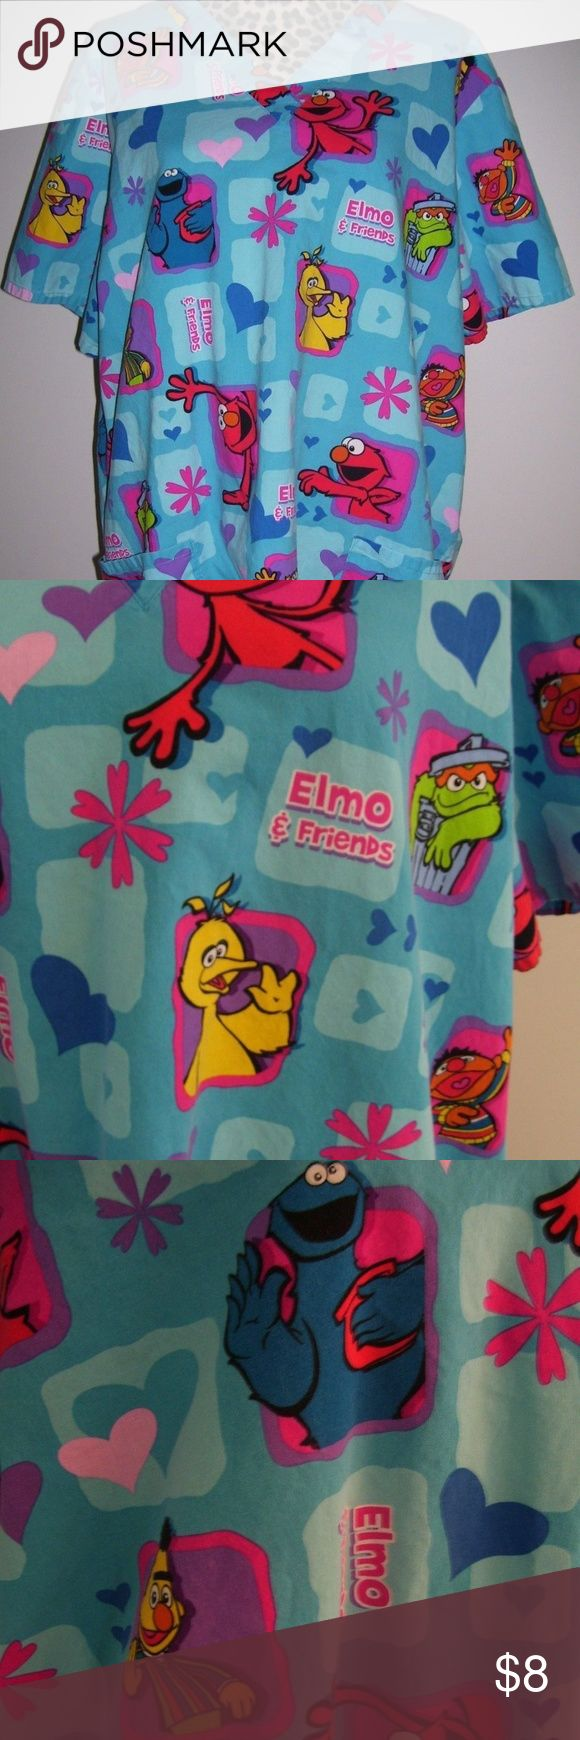 Sesame Street Ladies Size XLarge Scrub Top Sesame Streets Big Bird~ Bert&Ernie~ Cookie Monster~Oscar the Grouch~Elmo Ladies Scrub Top Size XLarge  Preowned: No Rips ~ No Stains ~ No Tears  All of my clothing items are machine washed and dried before shipped!!  Bundle 3+ and receive a 15% Discount!!  Thank you for looking and Happy Poshing!! Sesame Street Tops